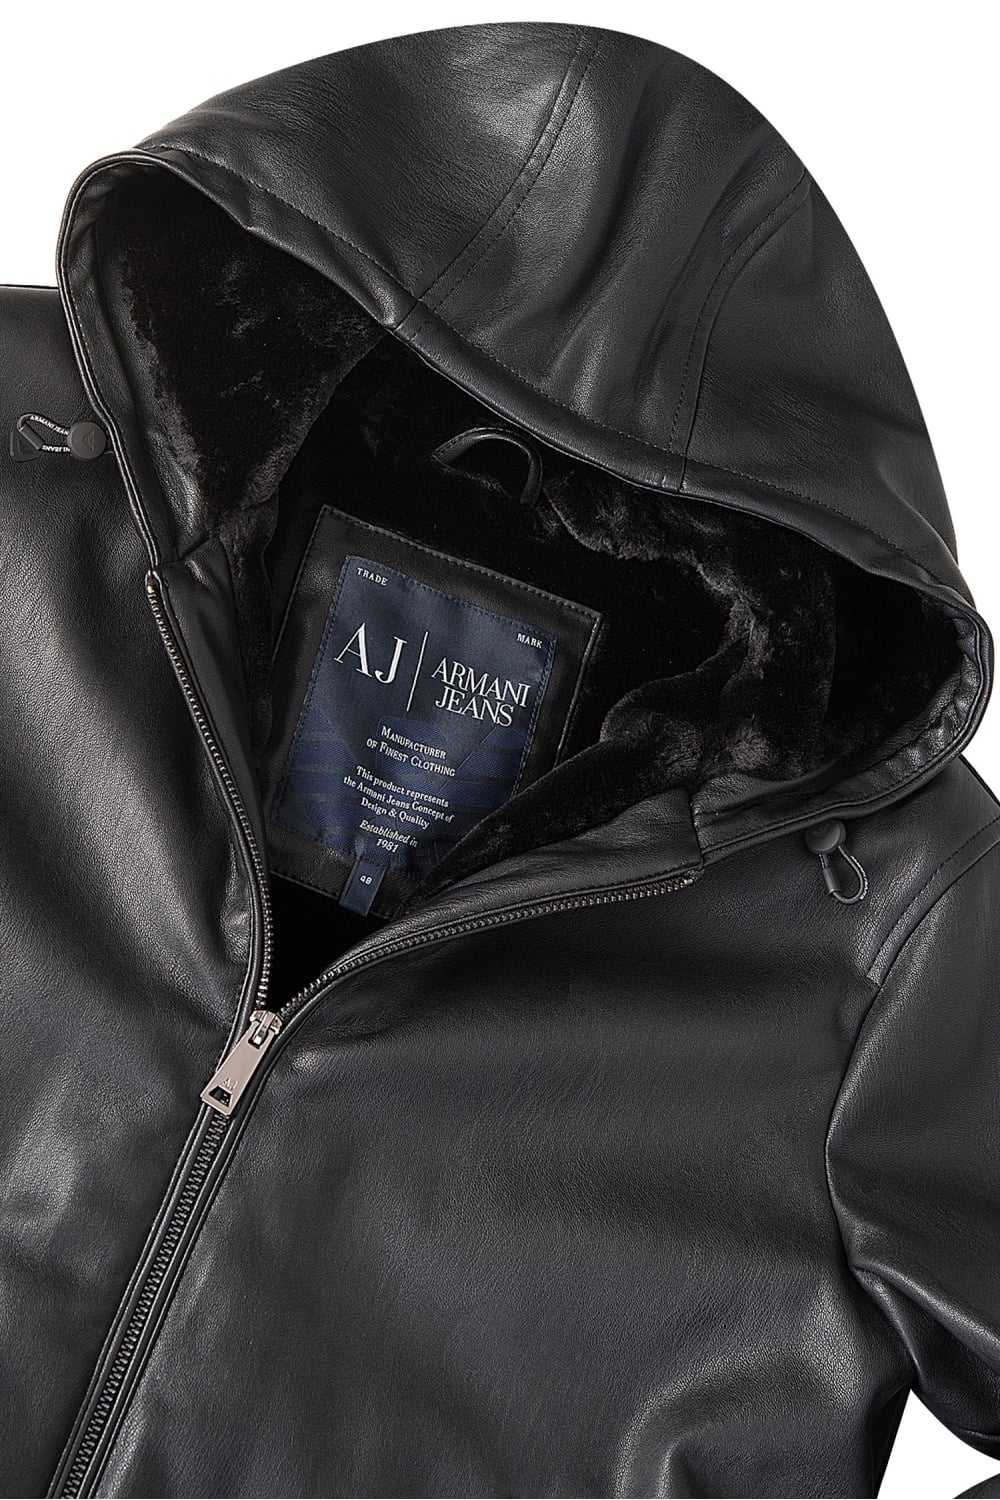 armani jeans leather jacket. Black Bedroom Furniture Sets. Home Design Ideas